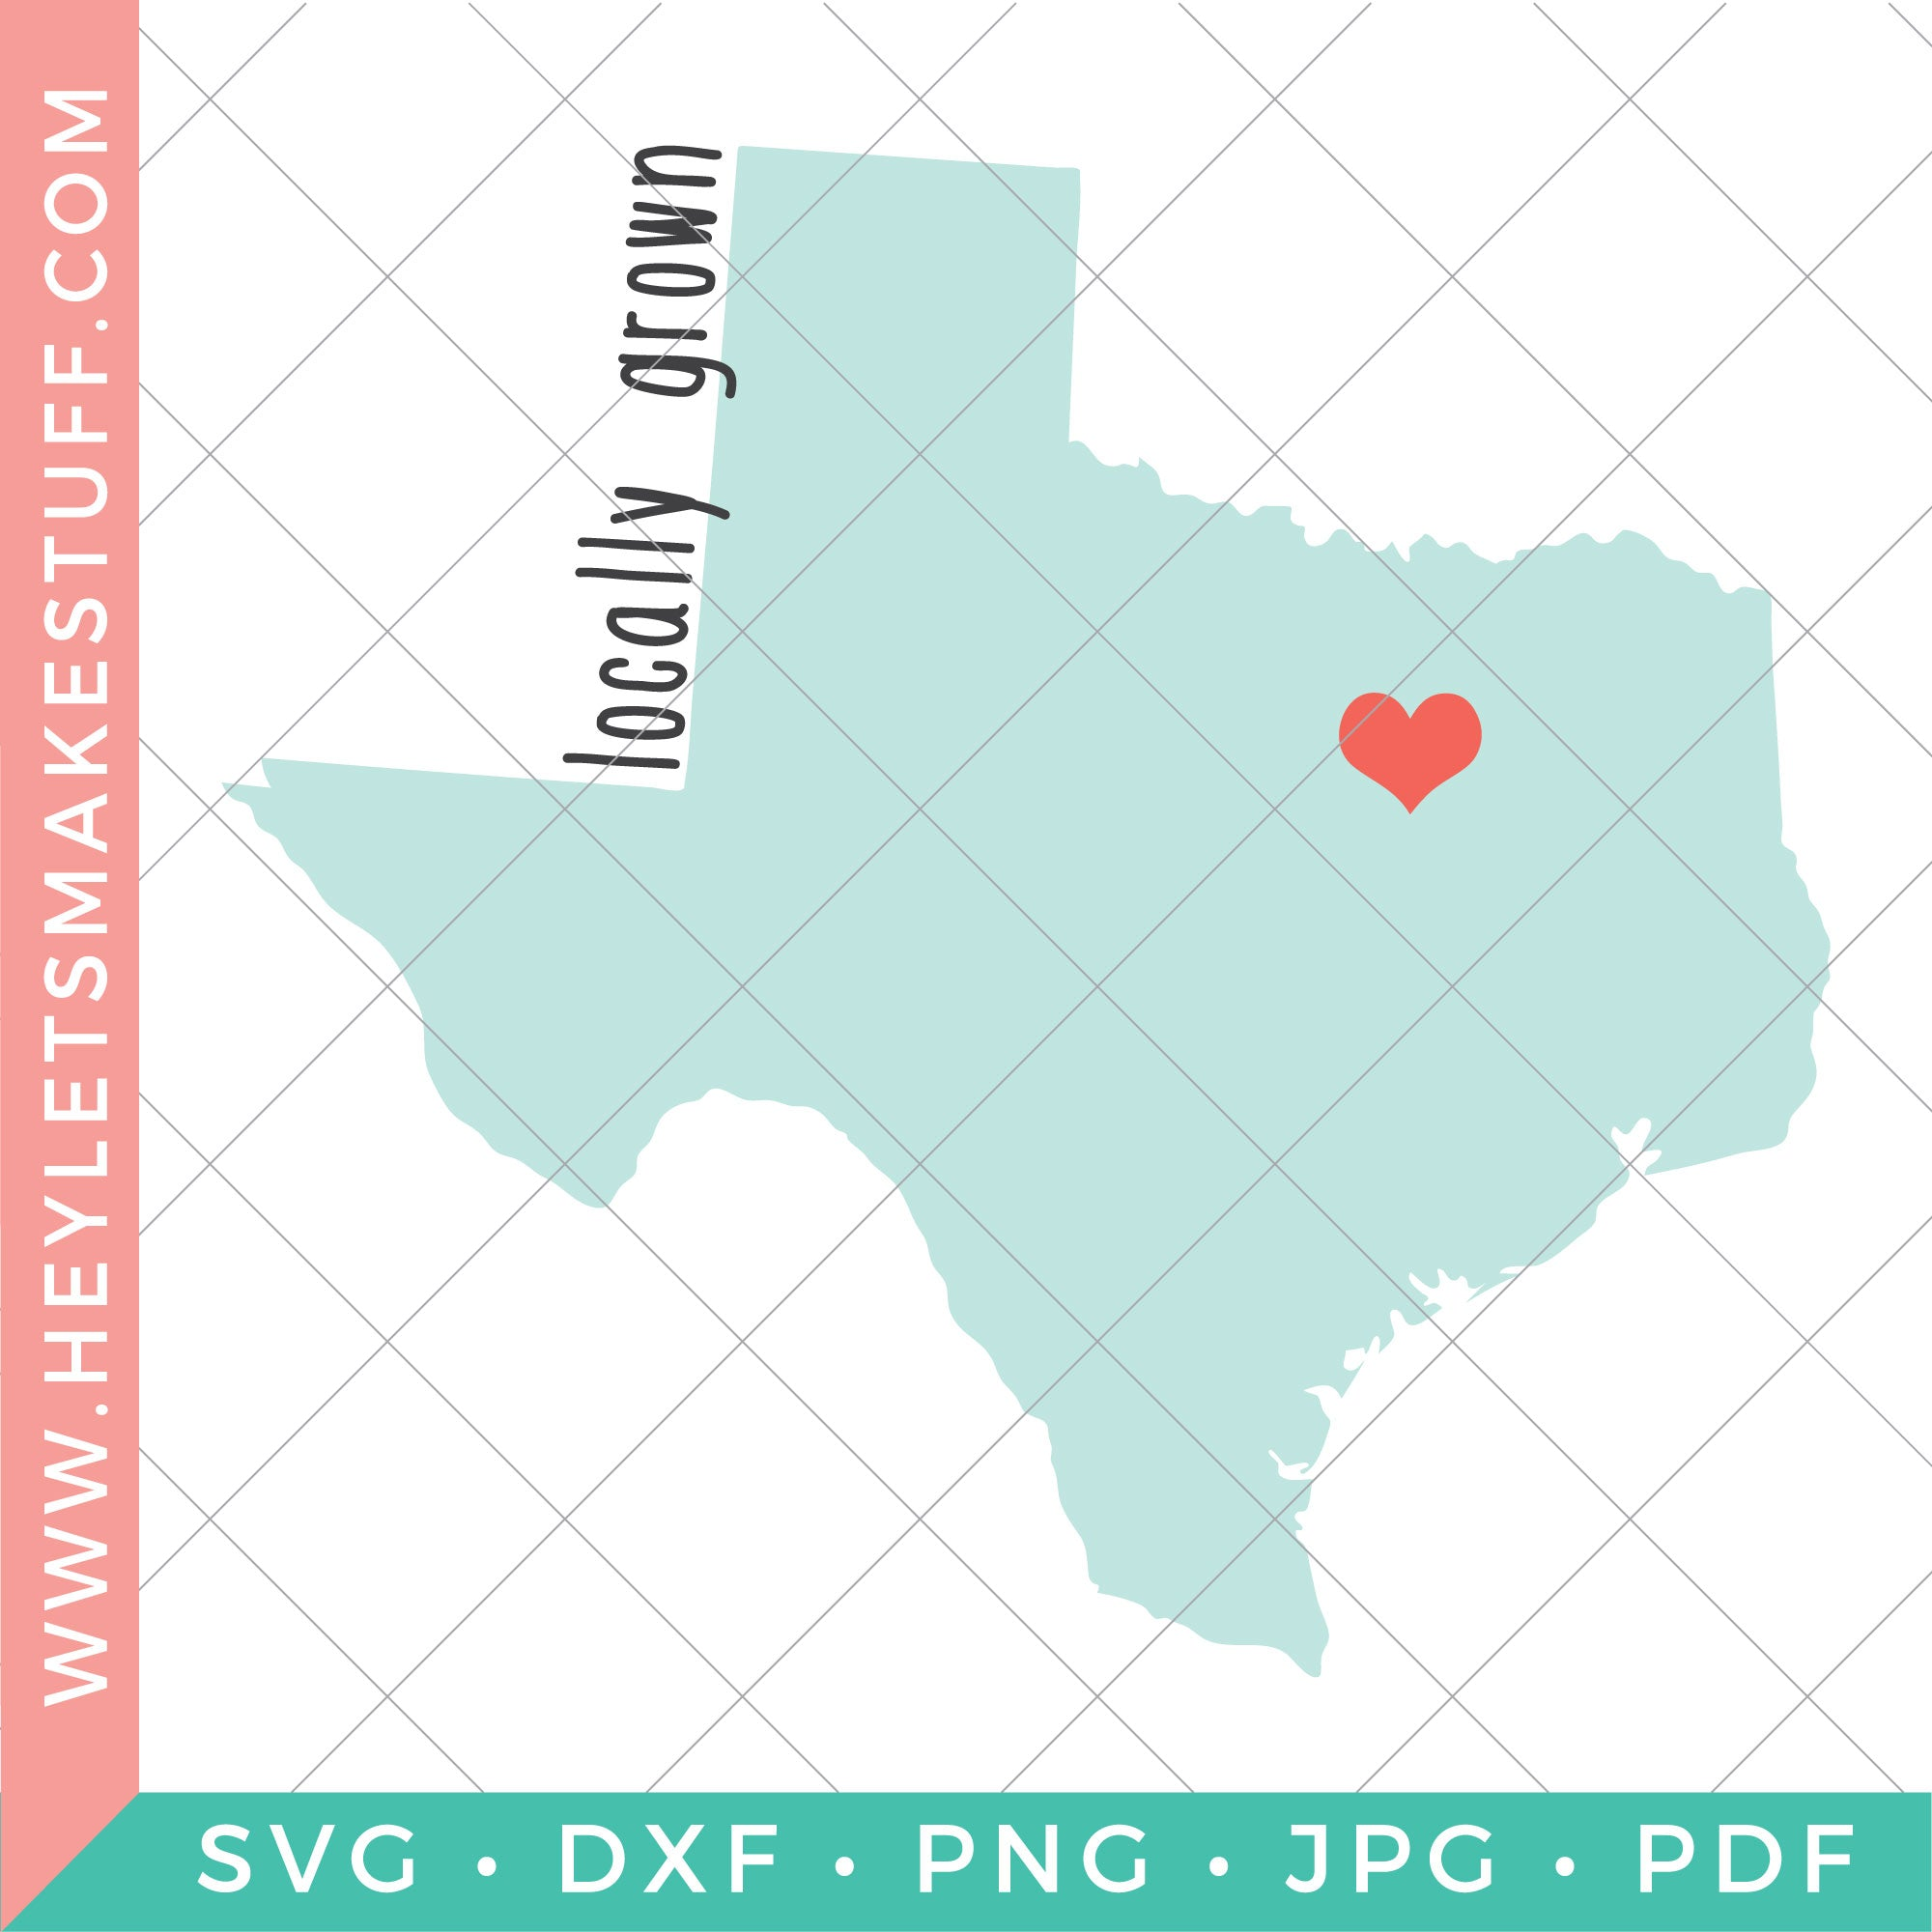 Locally Grown - Texas